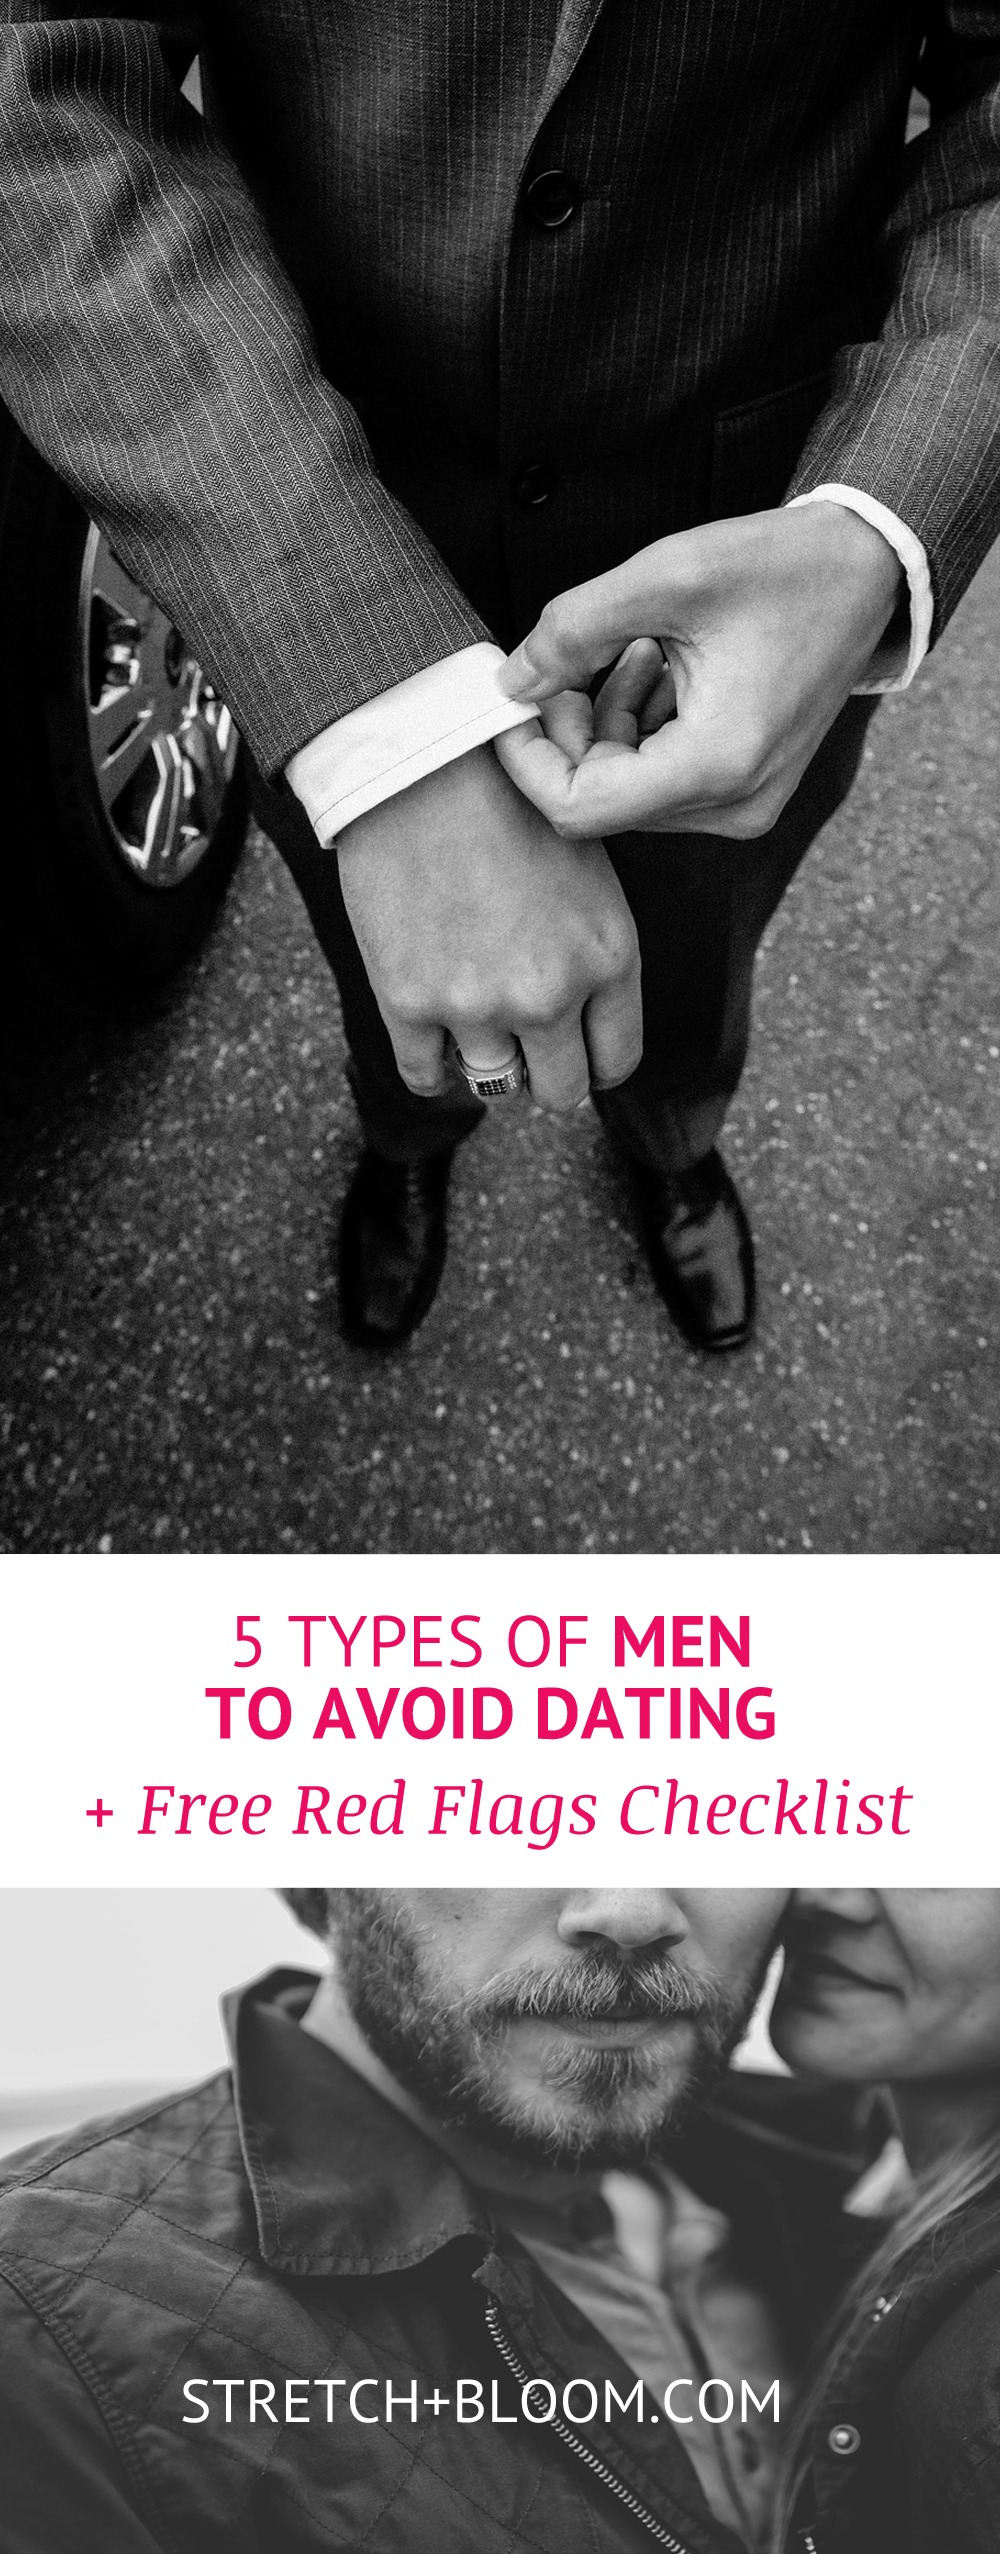 5 types of men to avoid dating + 20 dating red flag bonus